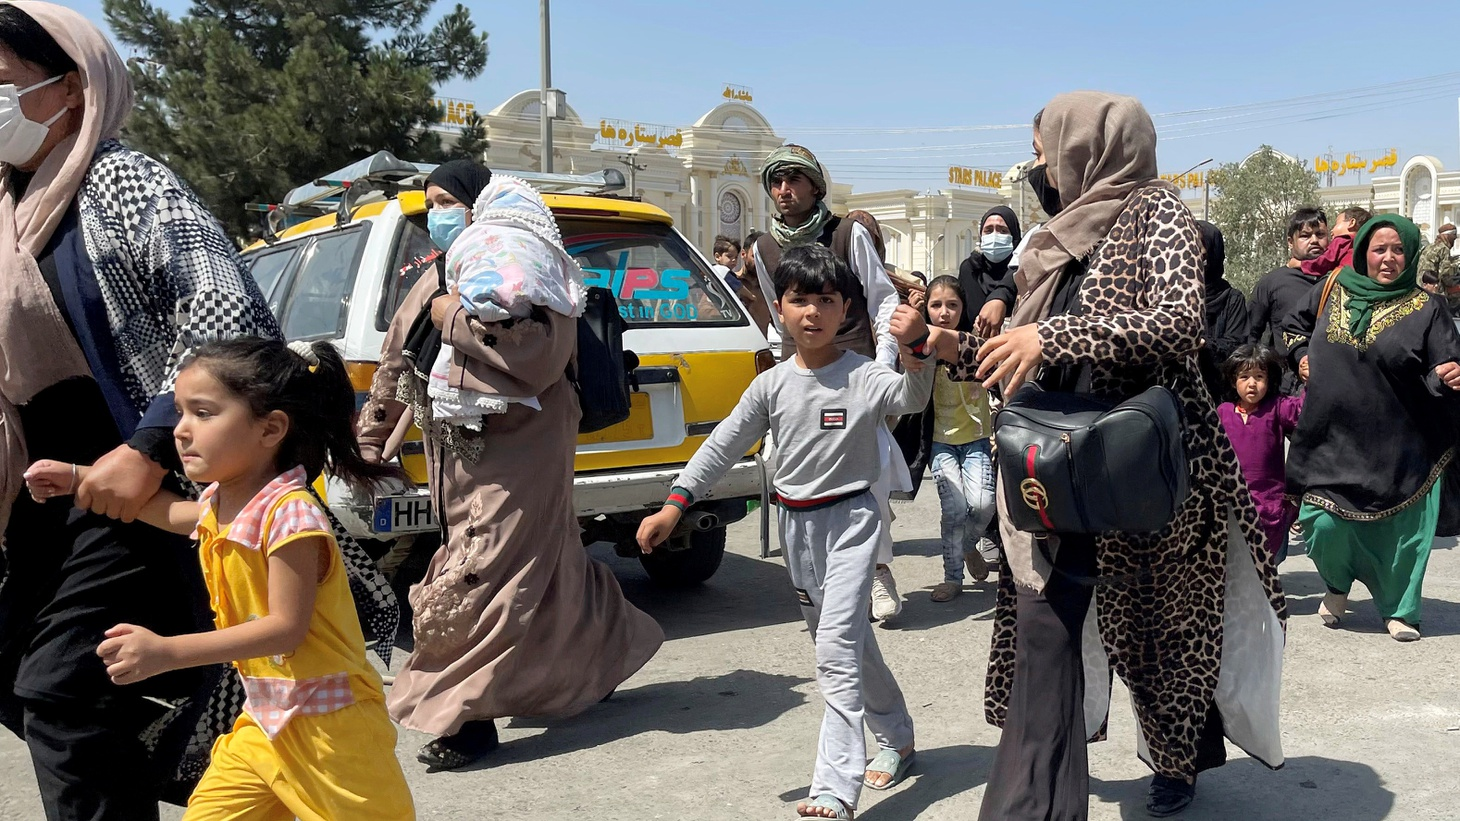 Women with their children try to get inside Hamid Karzai International Airport in Afghanistan, August 16, 2021.